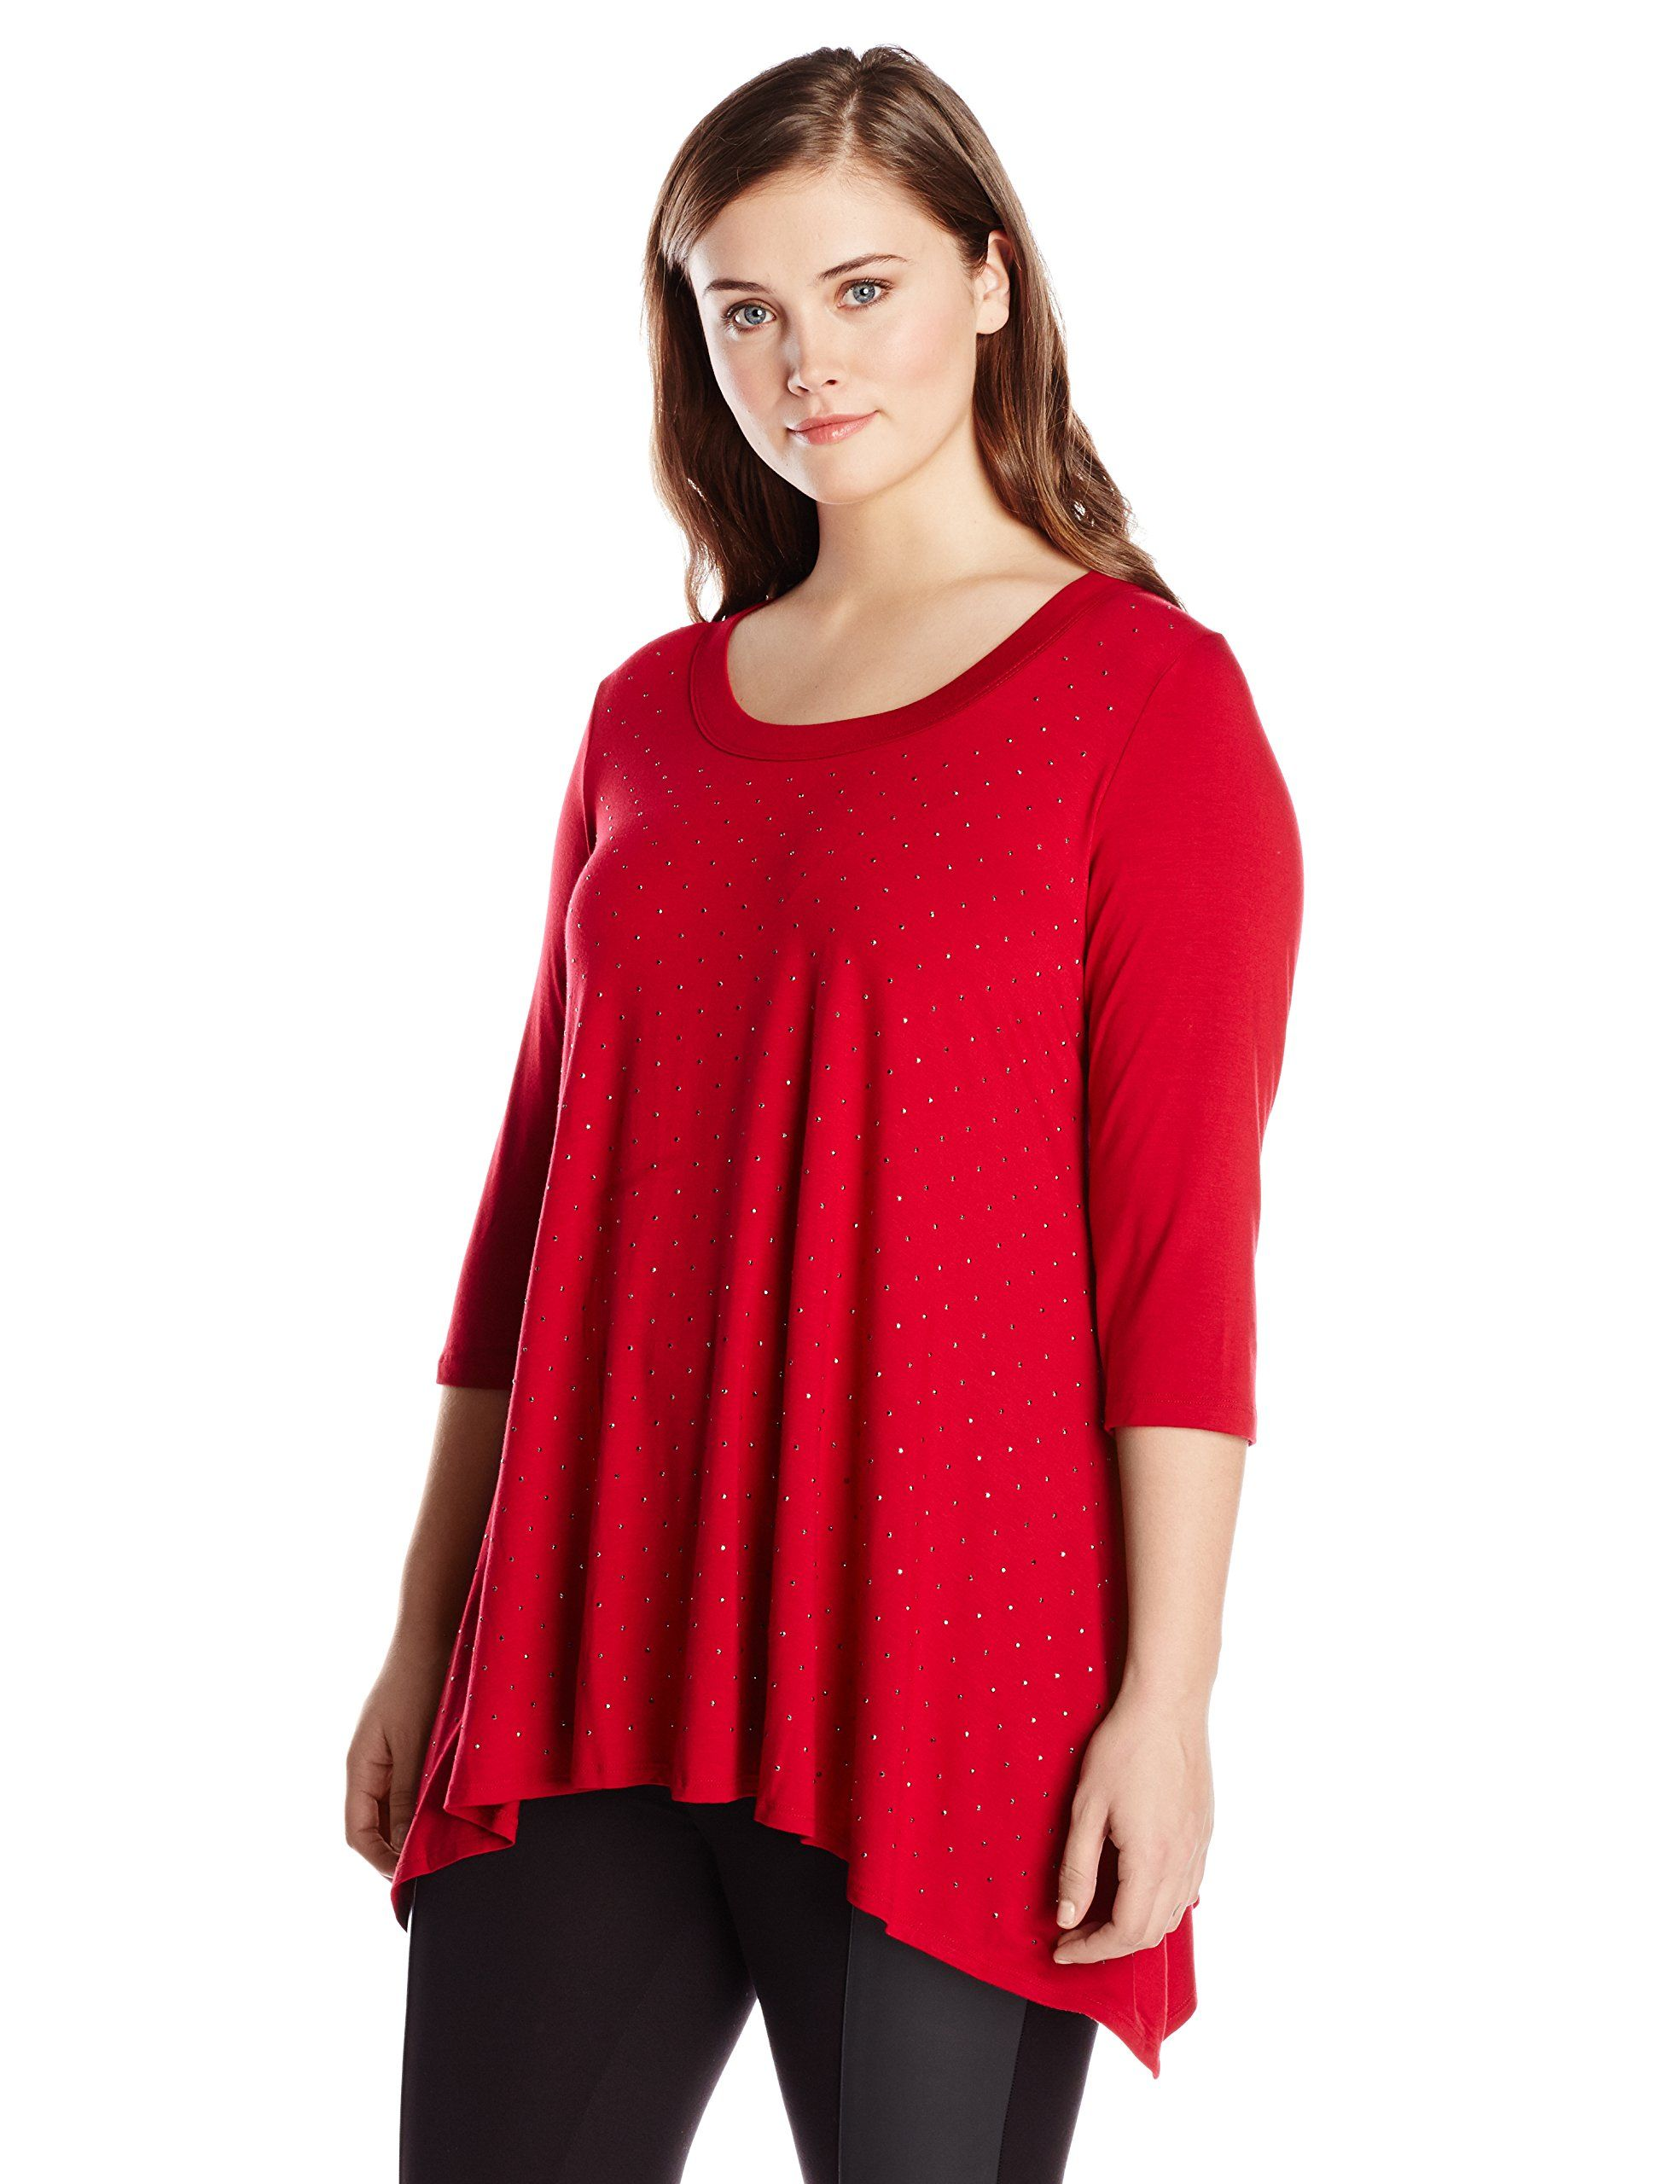 24f2a2463e7 Karen Kane Women s Plus Size Red 3 4 Sleeve Studded Top available at Amazon  Women s Clothing Store  Plus Size  Red  Studded  Tops  Plus  Size  Womens  ...